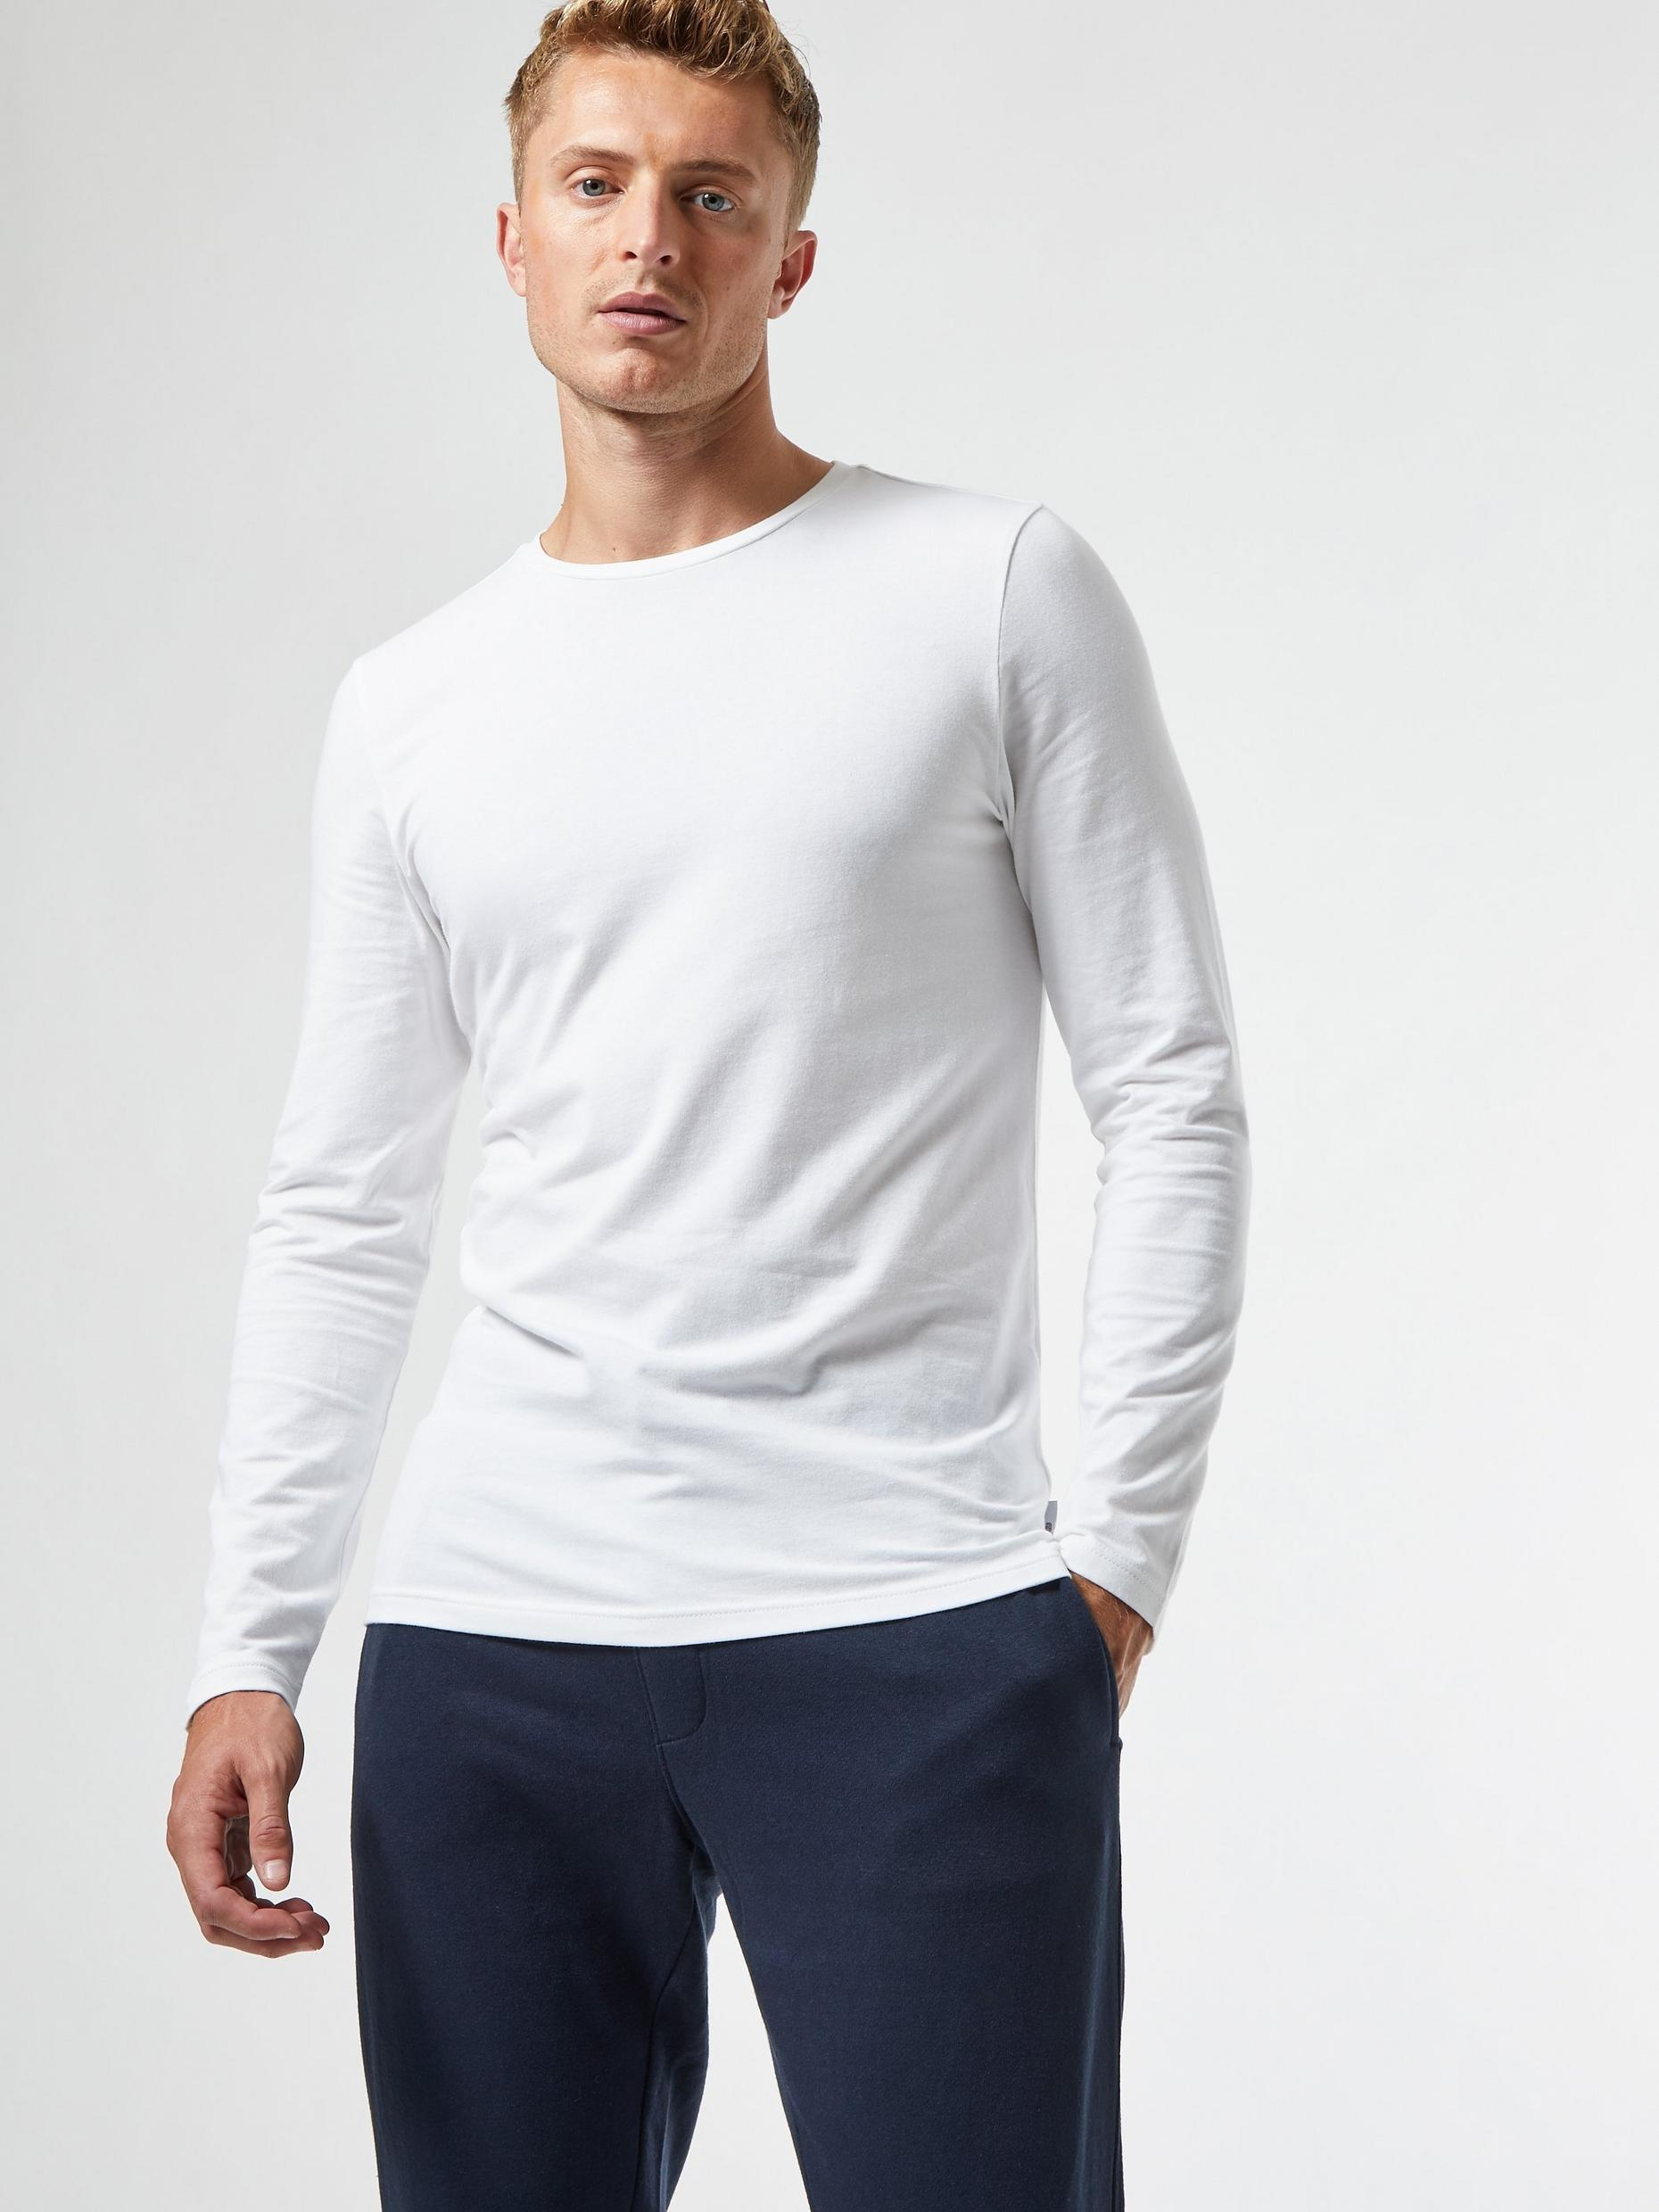 White Long Sleeved Muscle Fit TShirt